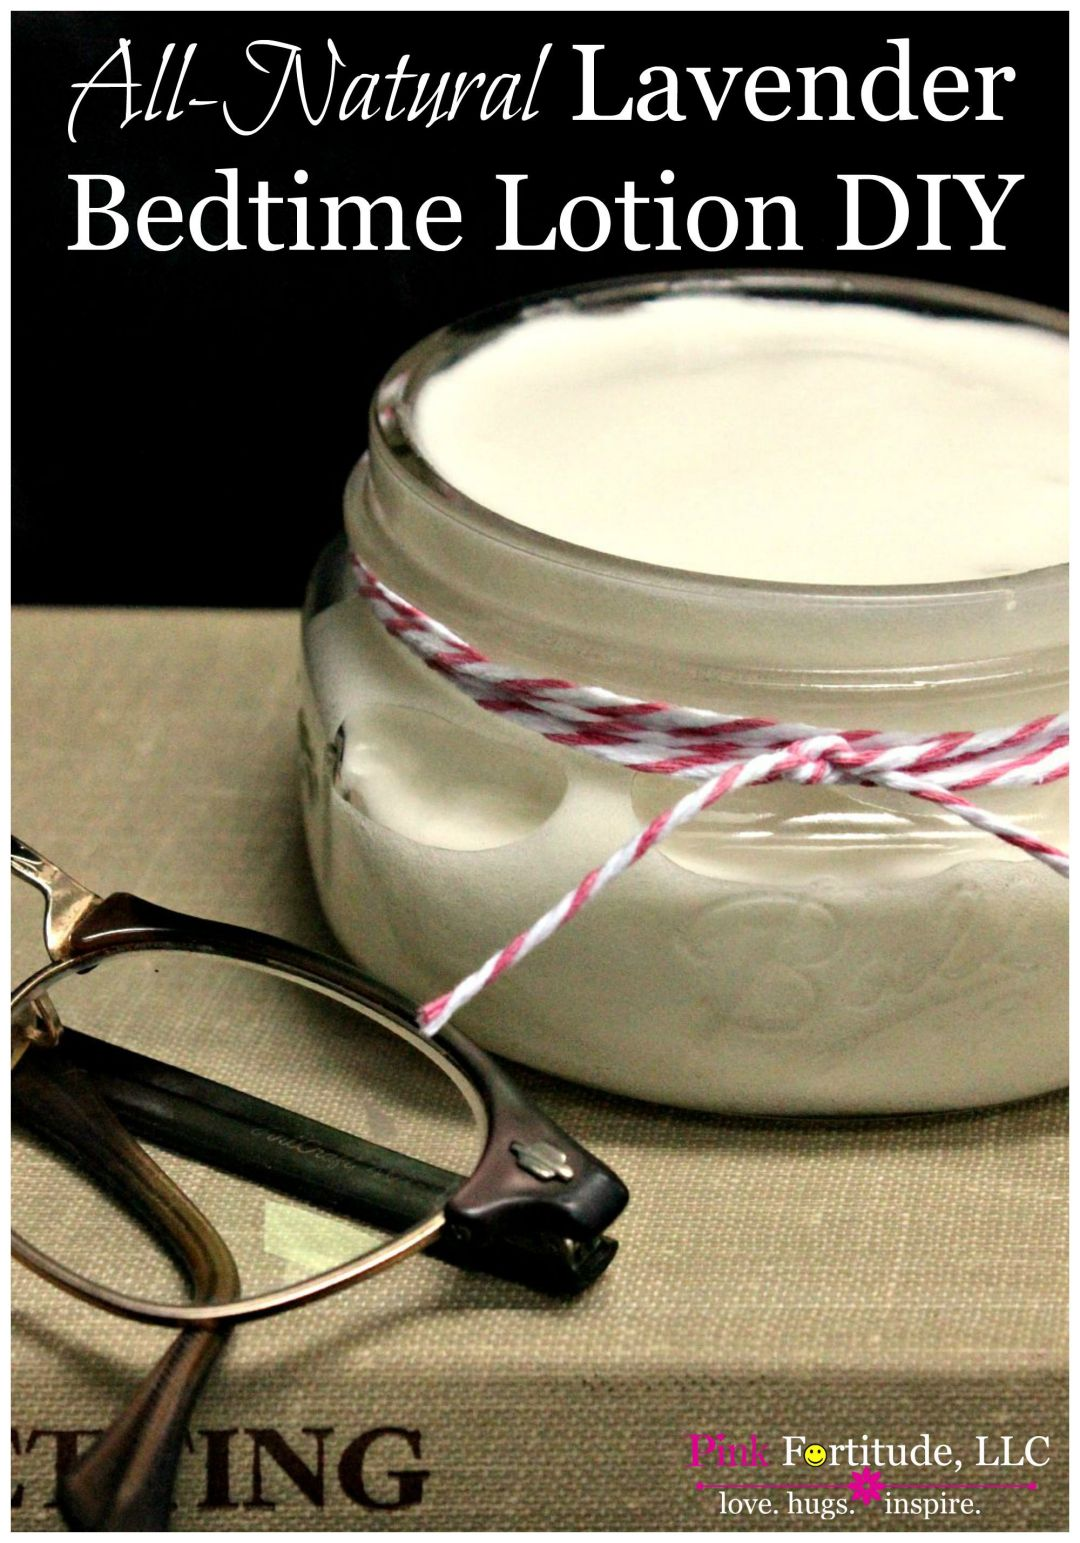 All-Natural Lavender Bedtime Lotion DIY by coconutheadsurvivalguide.com